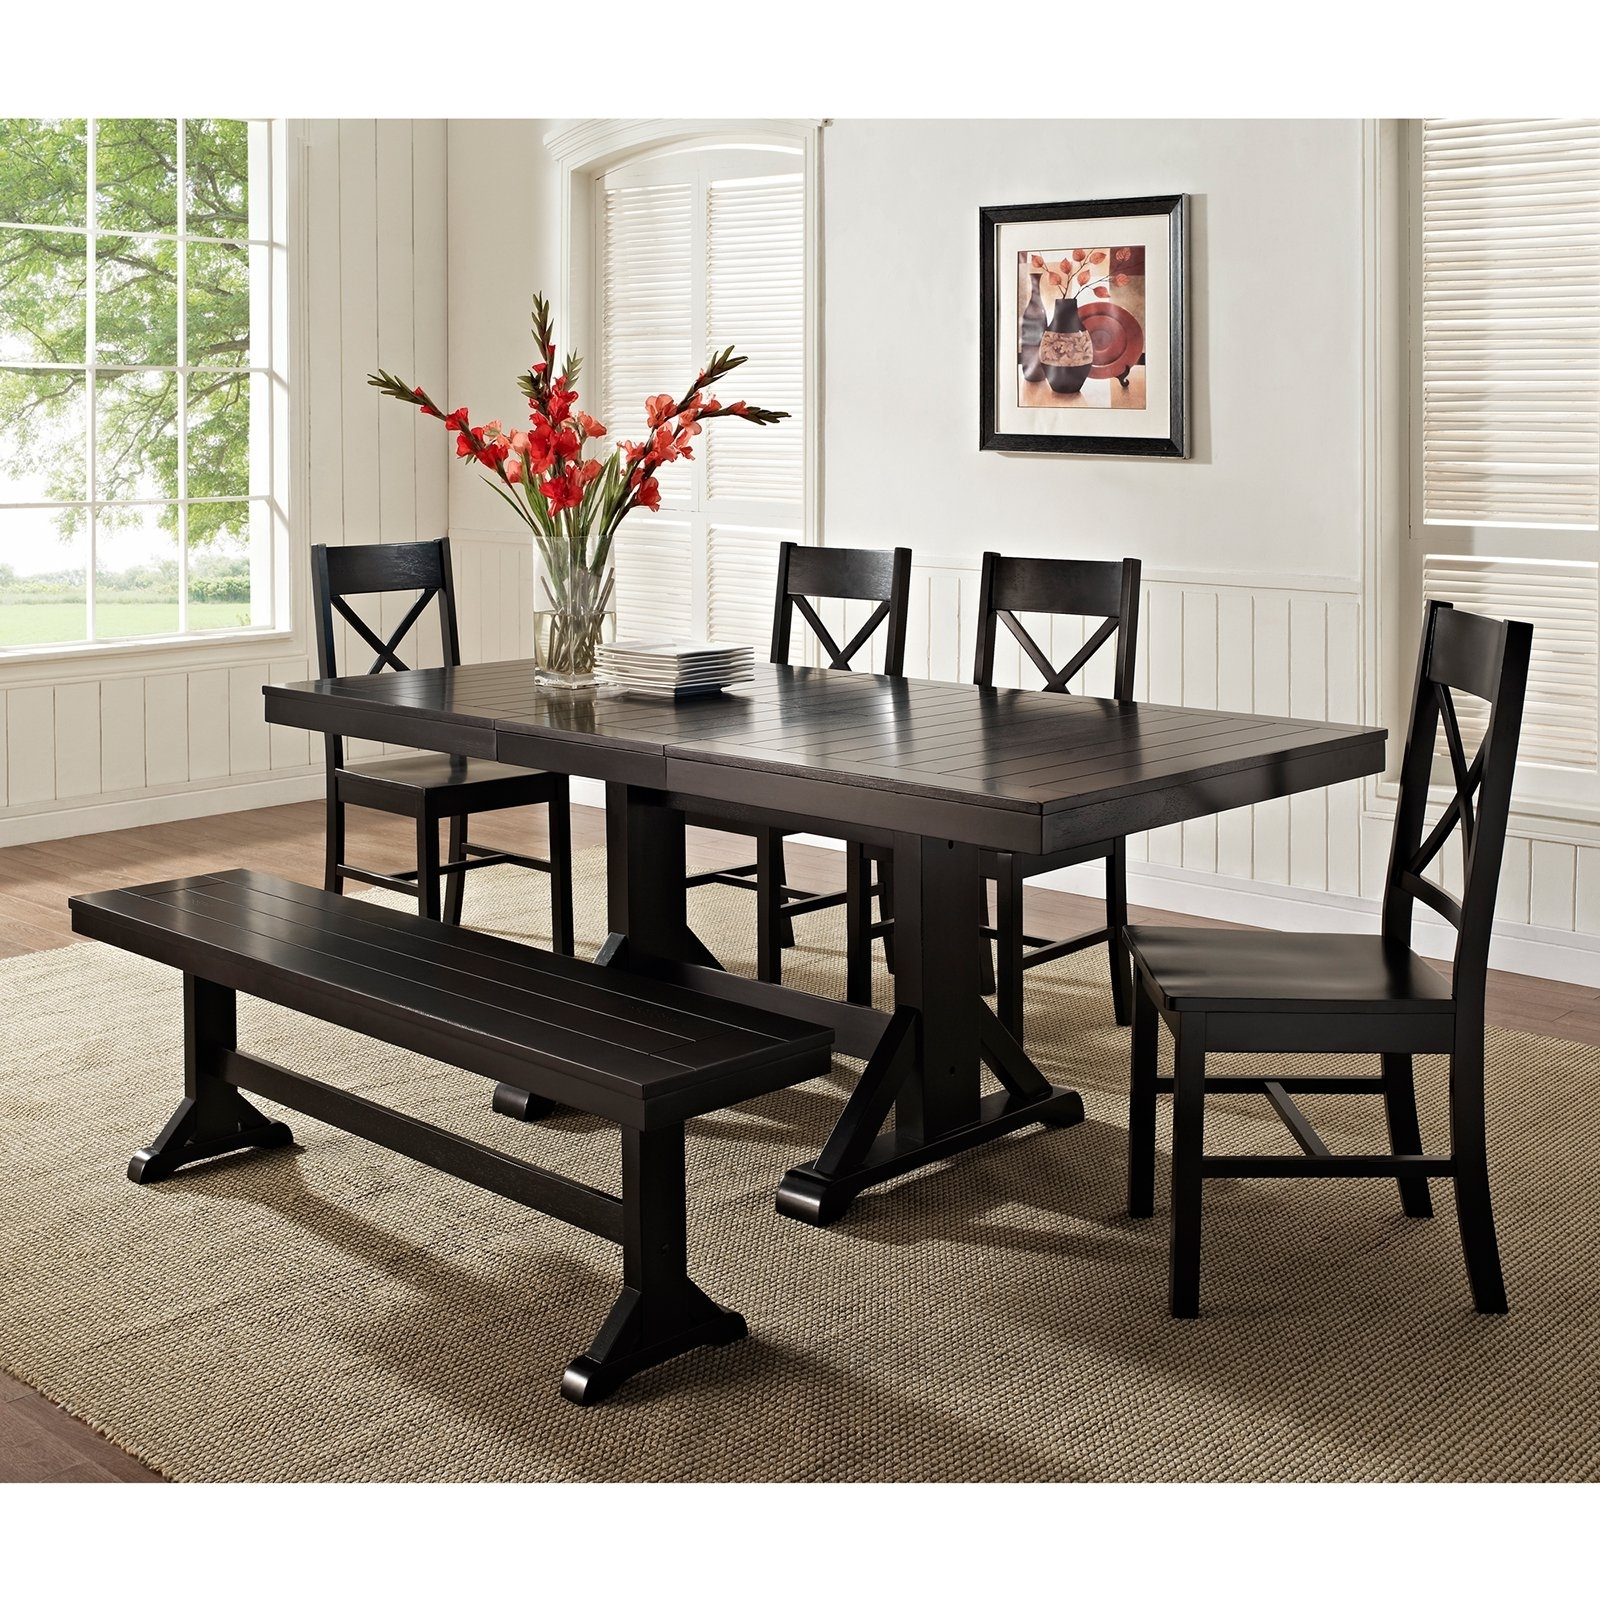 Latest Walker Edison Black 6 Piece Solid Wood Dining Set With Bench With Dark Solid Wood Dining Tables (View 21 of 25)